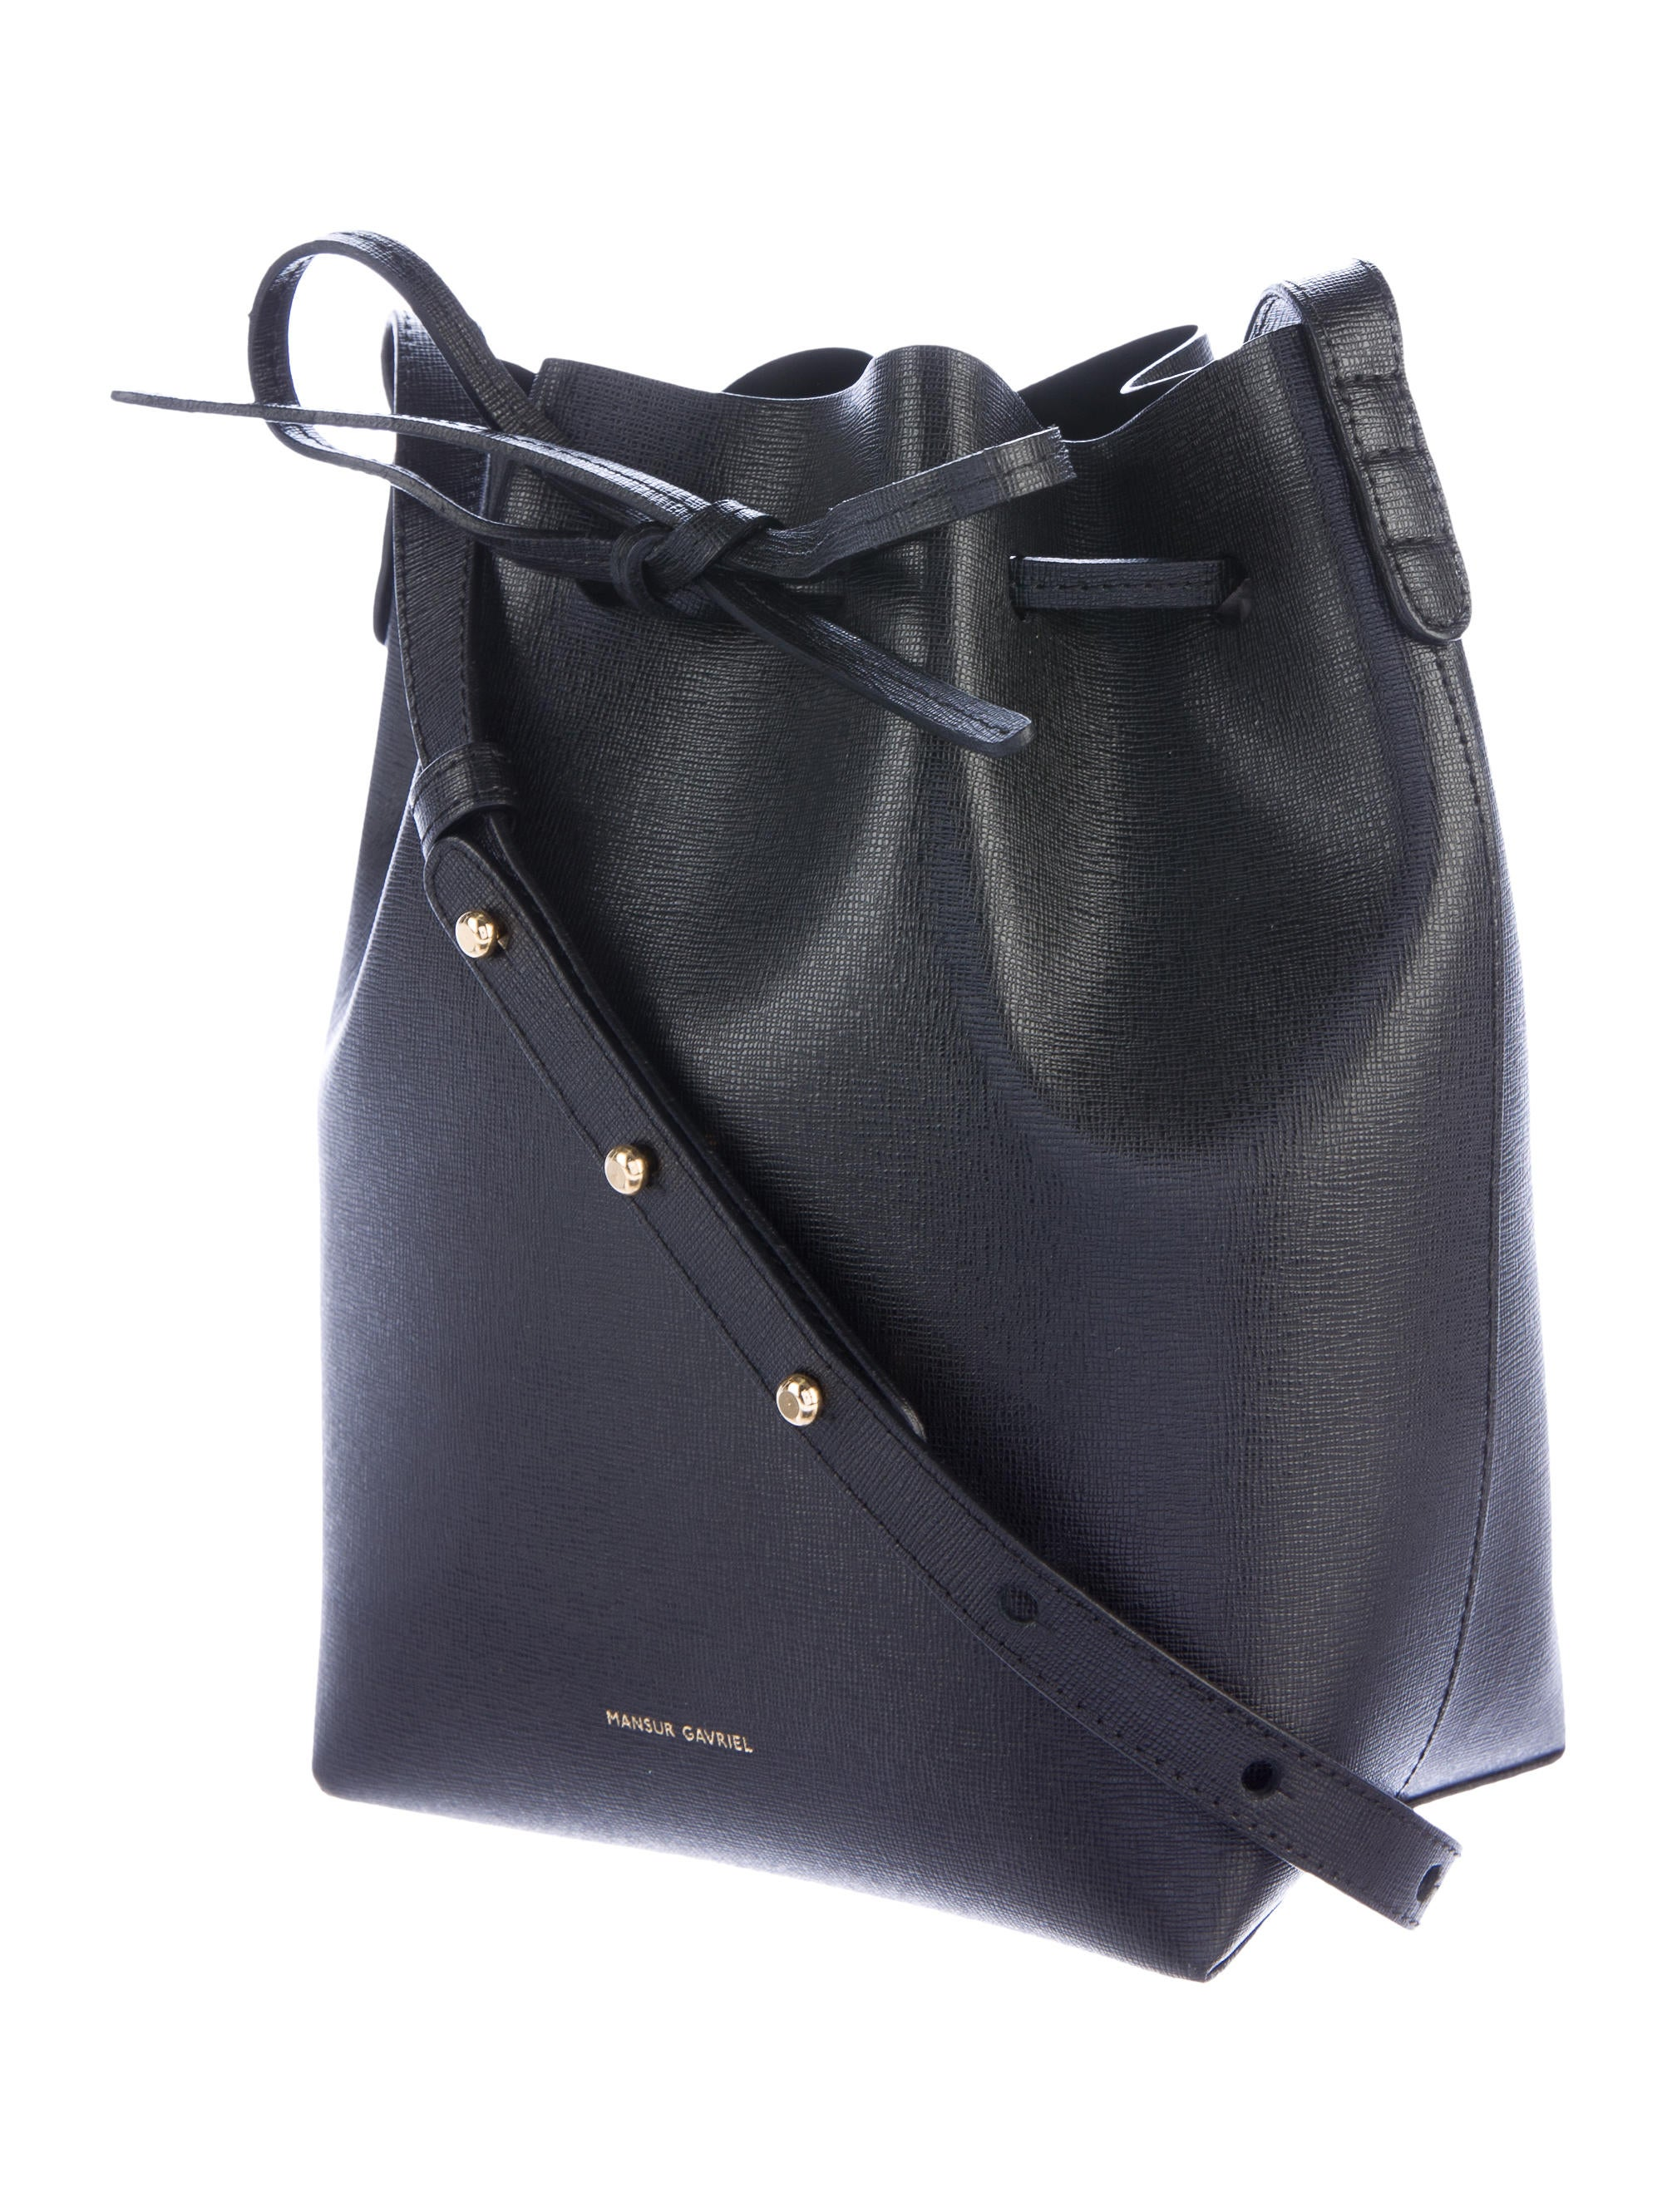 mansur gavriel leather bucket bag handbags wgy21154. Black Bedroom Furniture Sets. Home Design Ideas